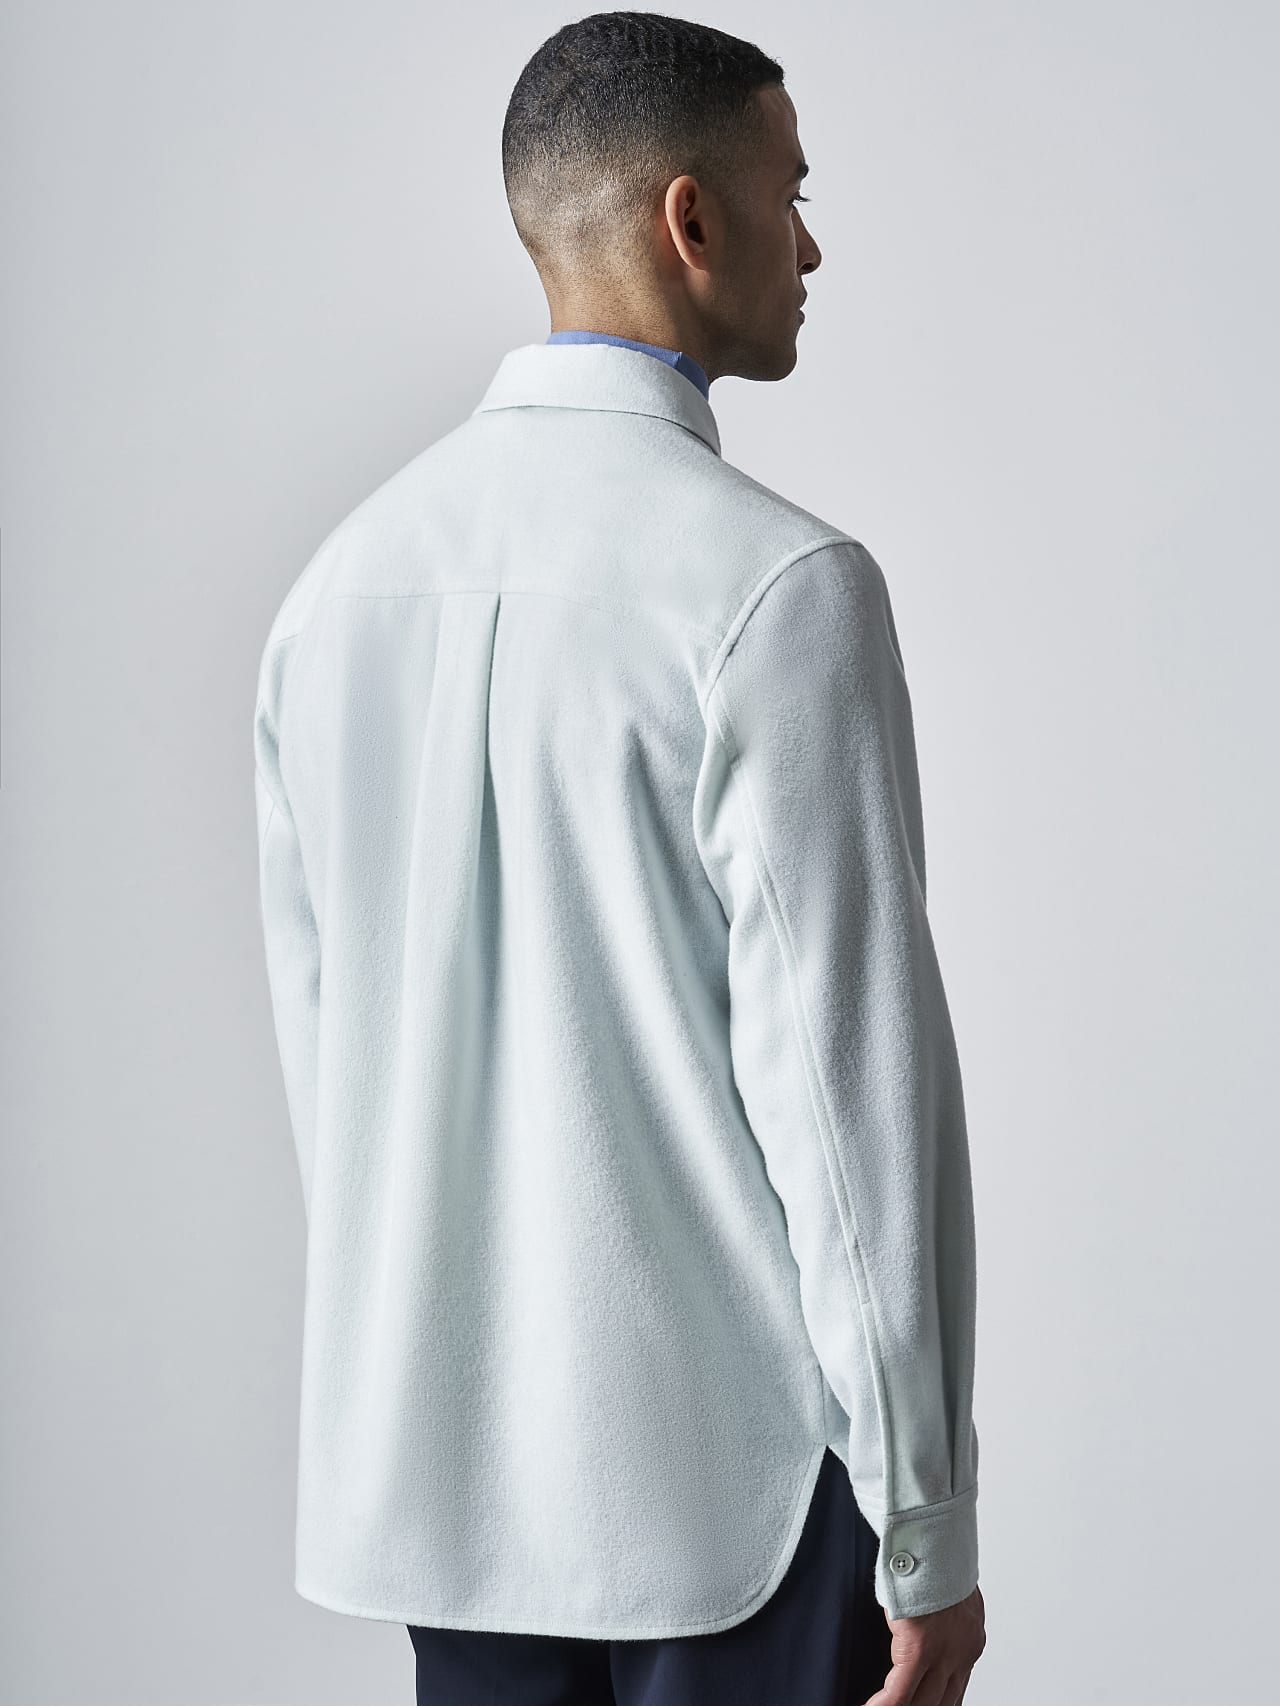 WOVER V1.Y5.02 Wool Over-Shirt Pale Blue  Front Main Alpha Tauri